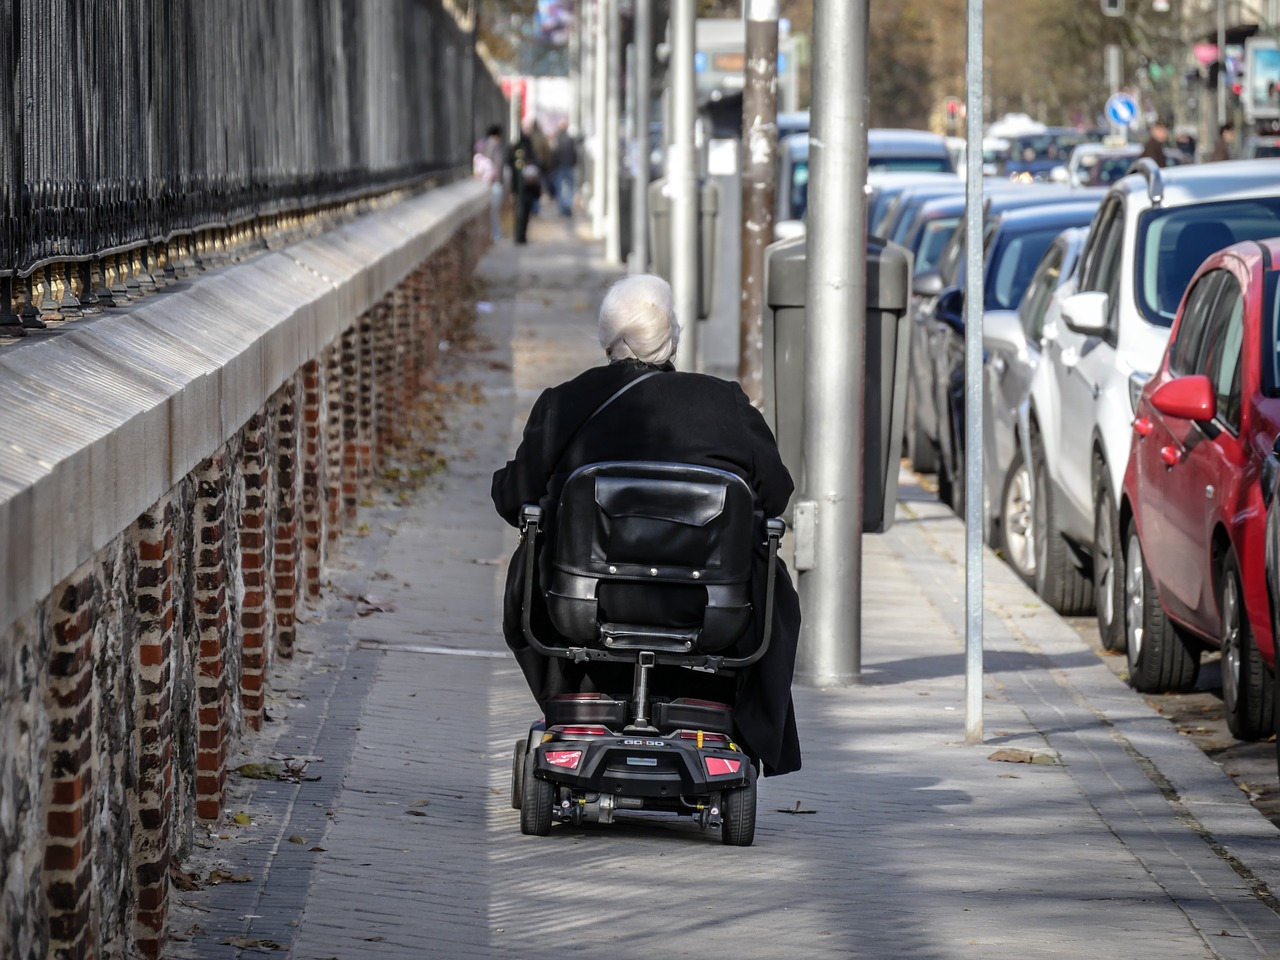 Electric mobility Scooters - The Sunrise Post